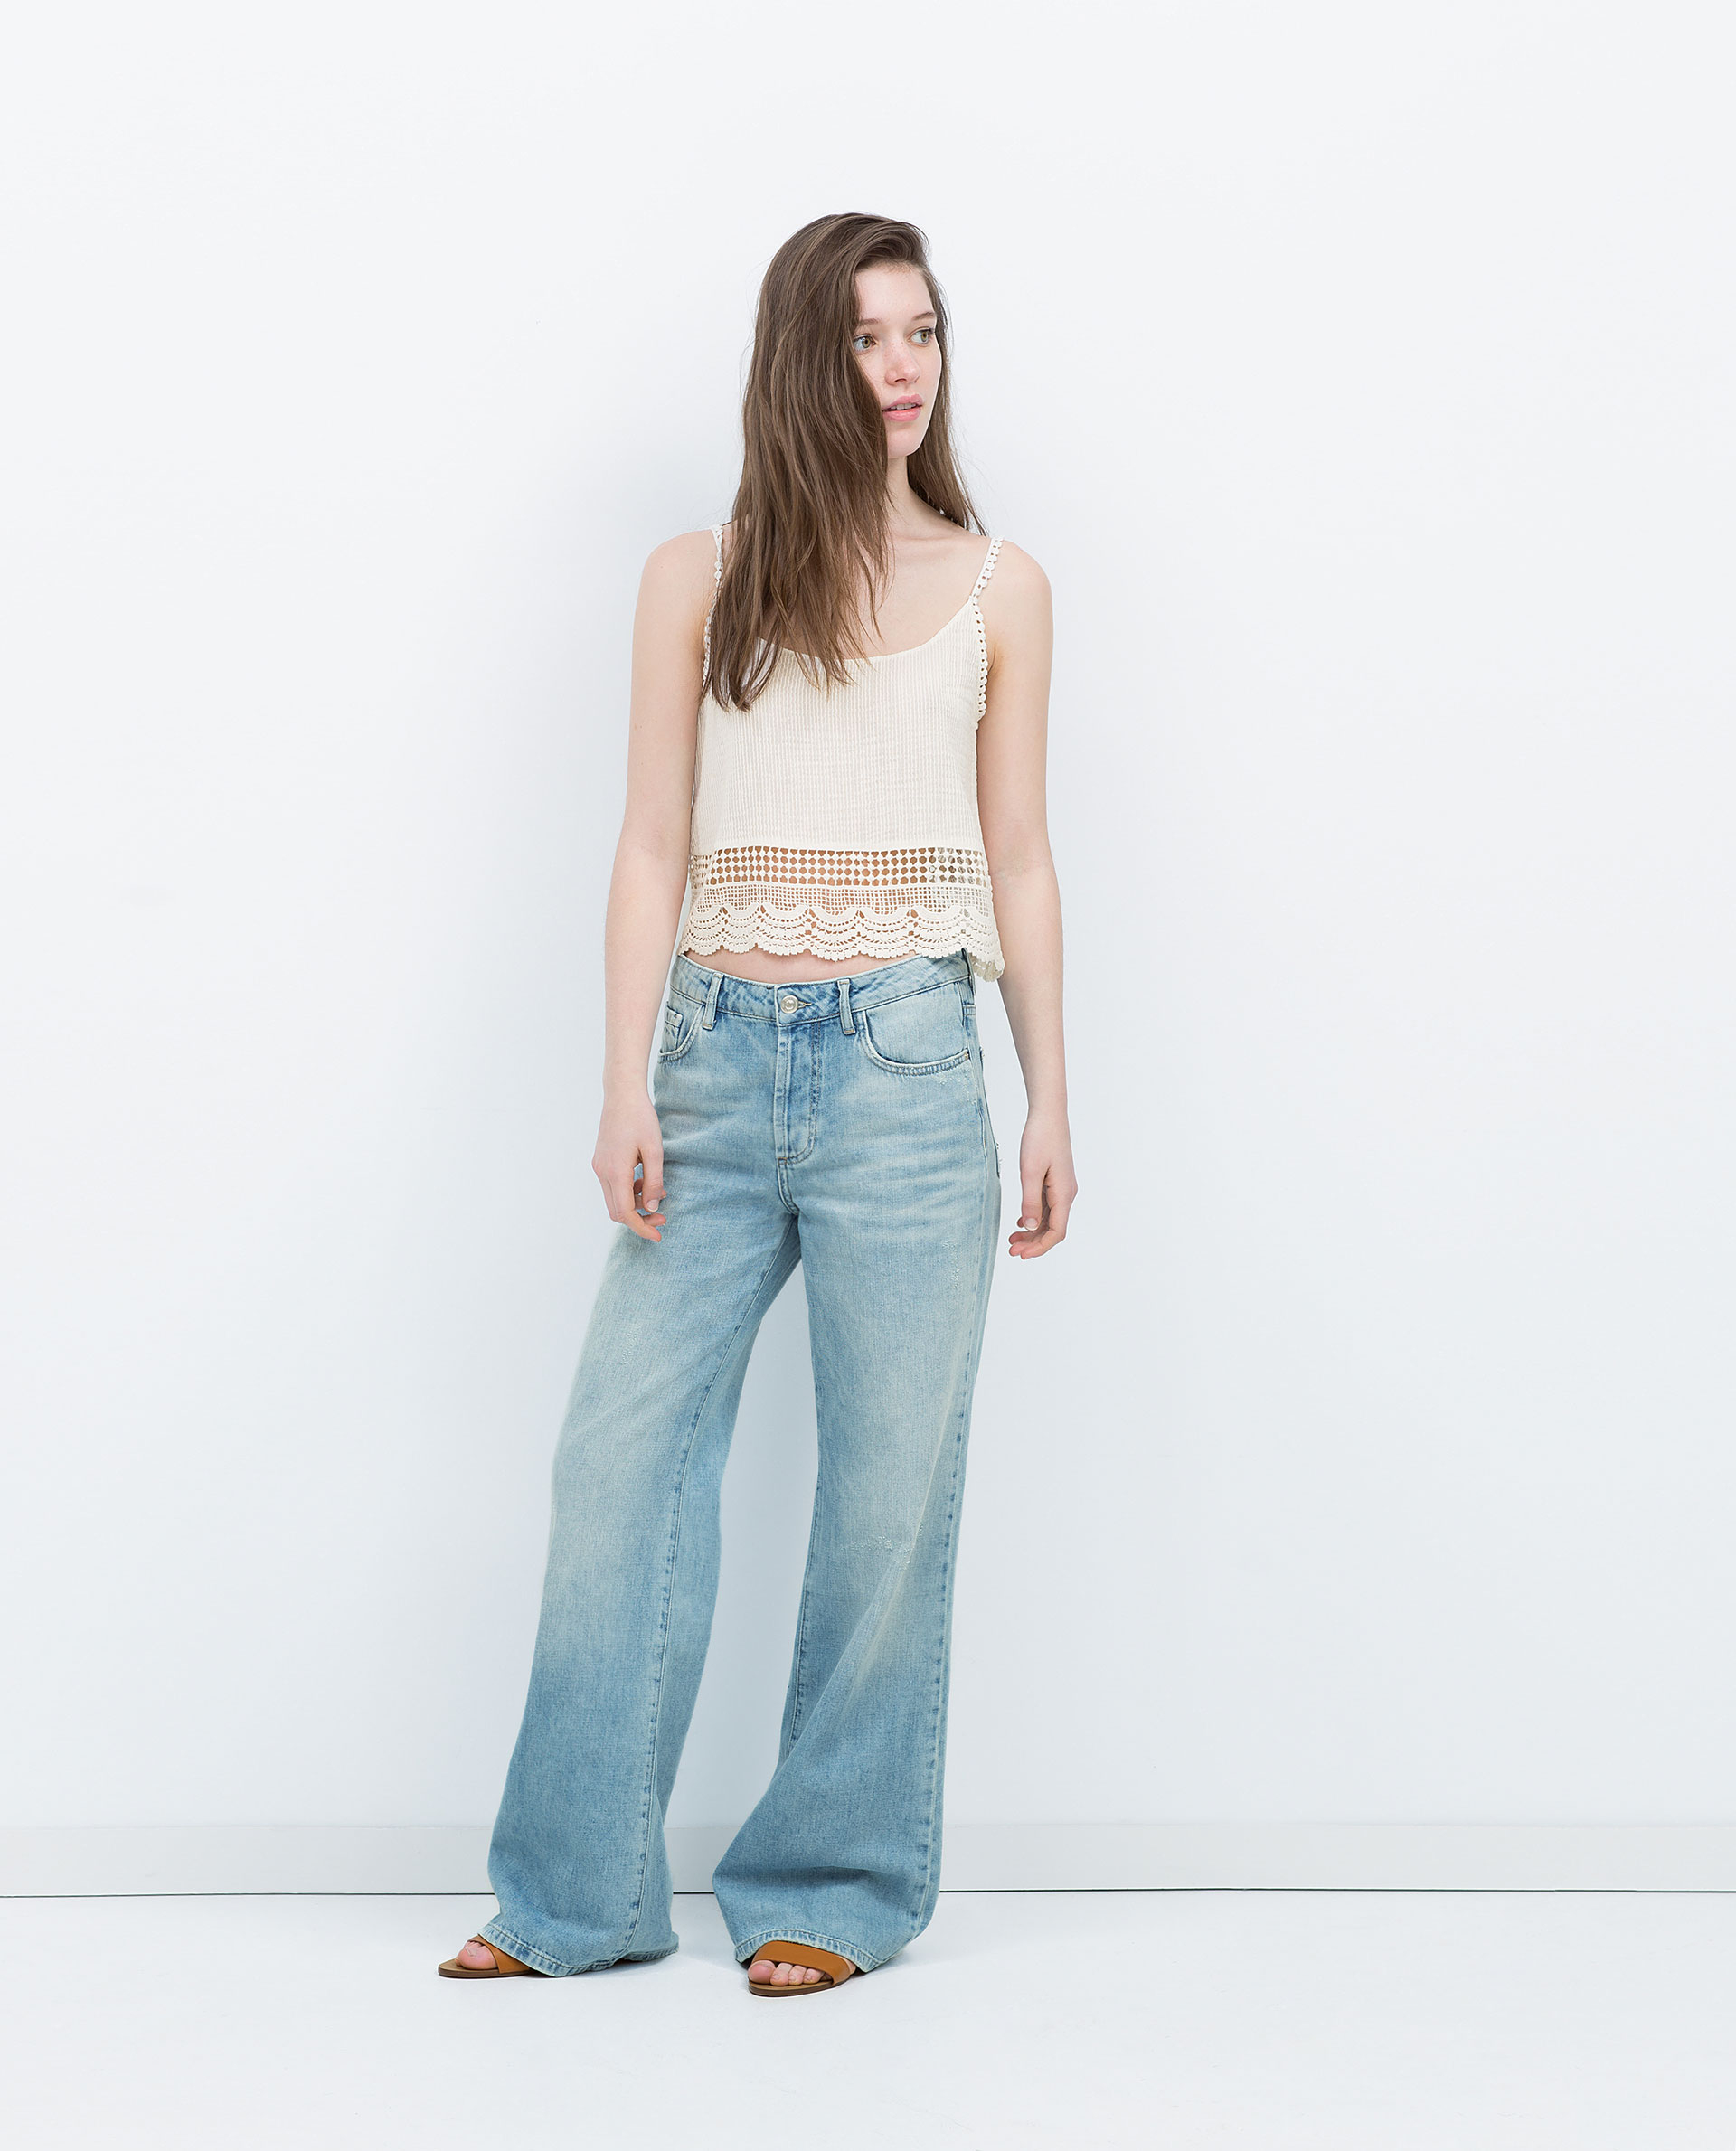 Elegant The Bohemianstyle Brand Owned By Urban Outfitters Was Named As The Favorite Clothing Brand Of Young Women Surveyed By College Fashionista And Goldman Sachs It Beat Out Popular Favorites Like Topshop, Forever 21, H&ampM, And Zara